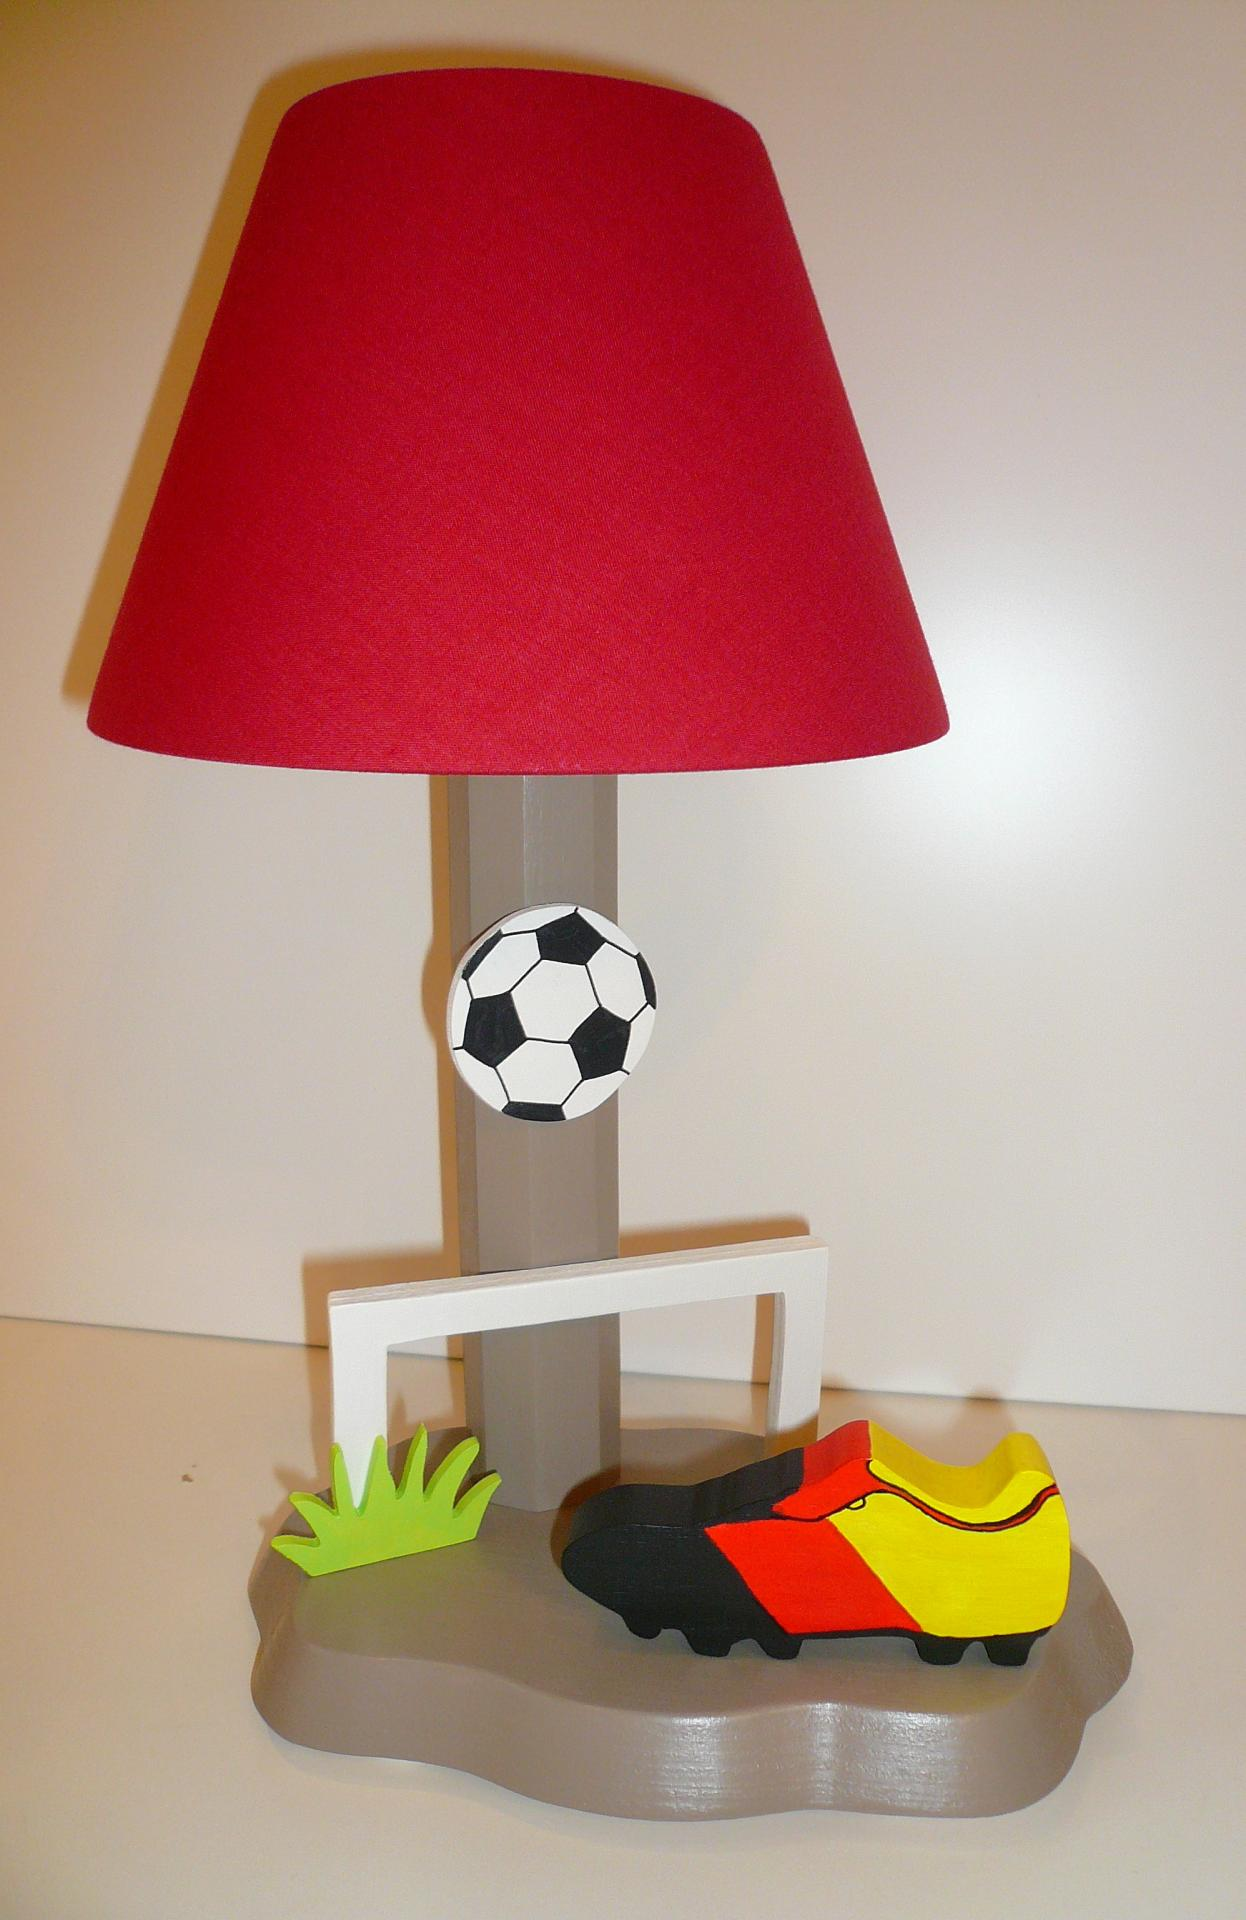 Fußball Lampe Lampe Quotfussball Quot